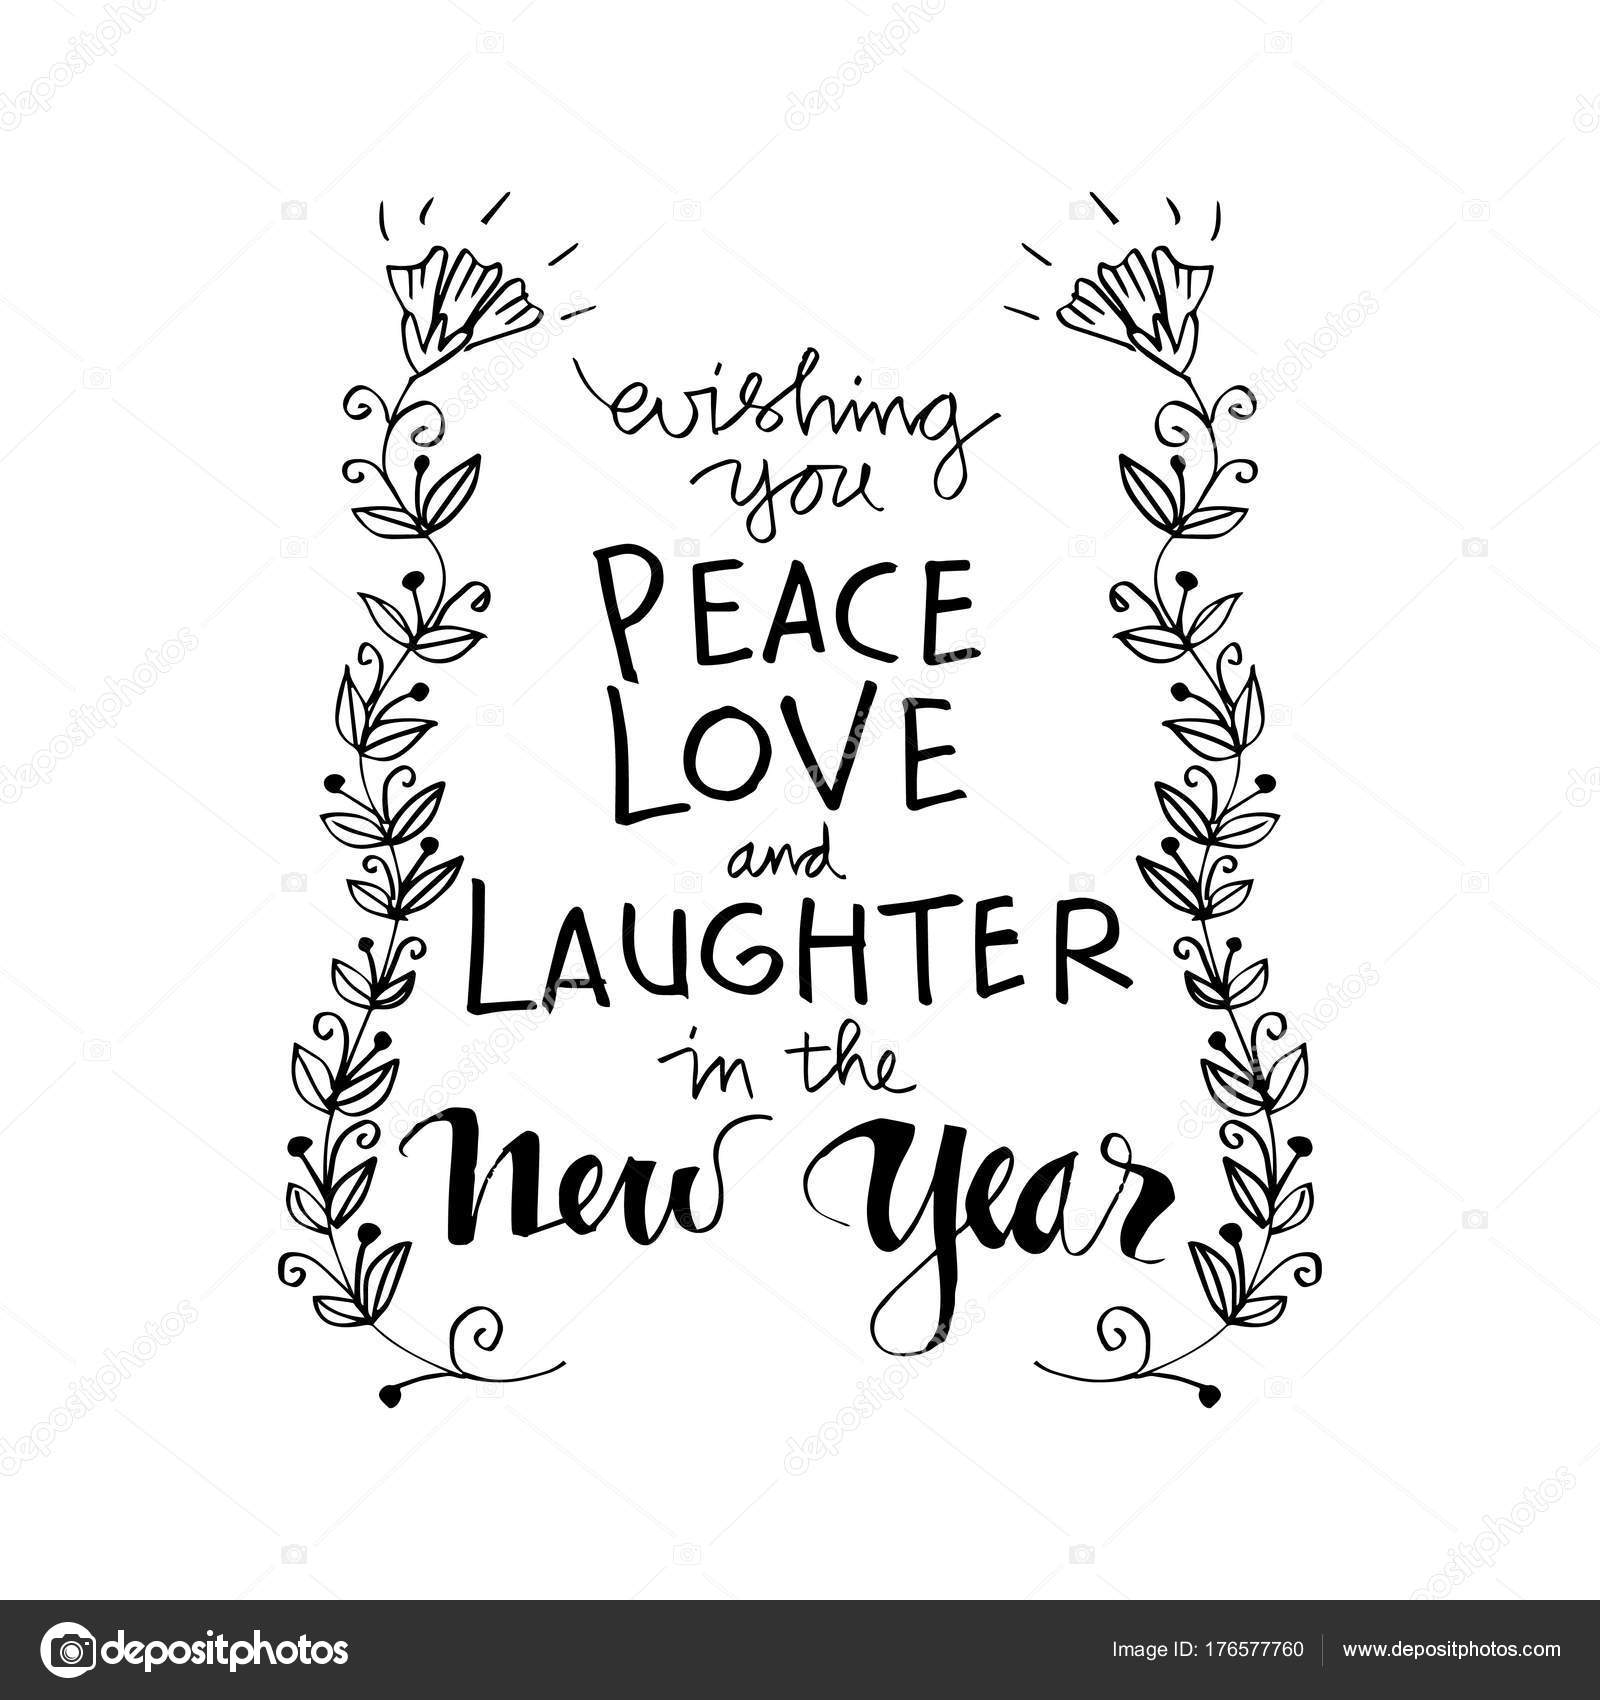 wishing you peace love laughter new year motivational quote stock